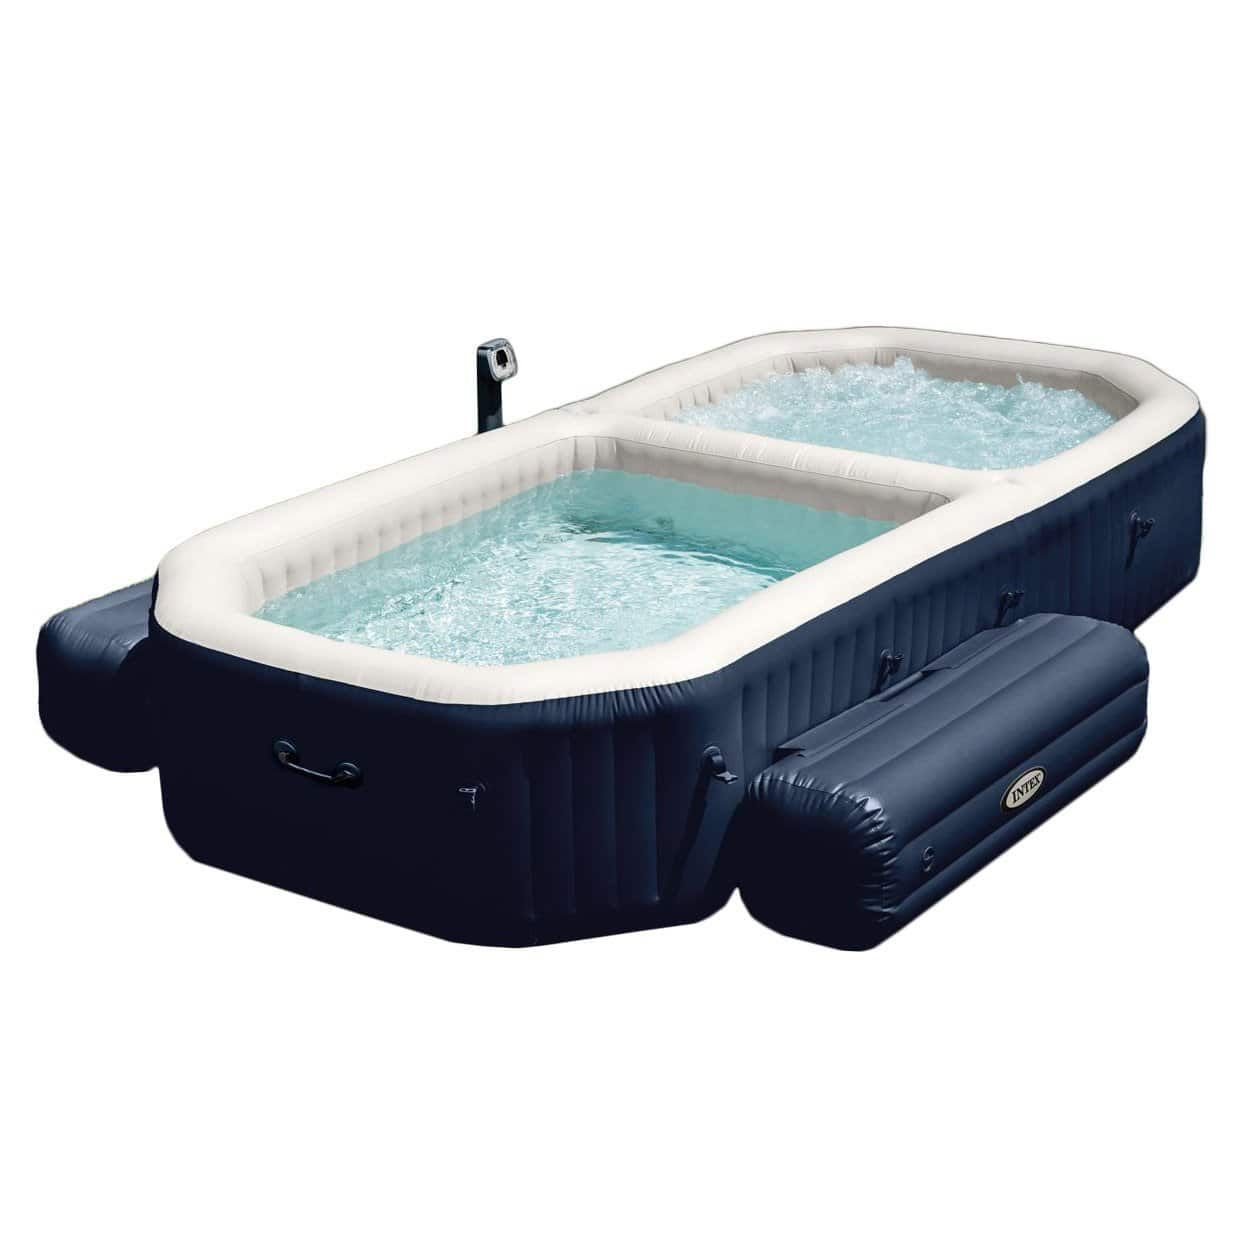 Top 10 Best Inflatable Hot Tubs In 2020 Topreviewproducts Best Inflatable Hot Tub Inflatable Hot Tubs Pool Hot Tub